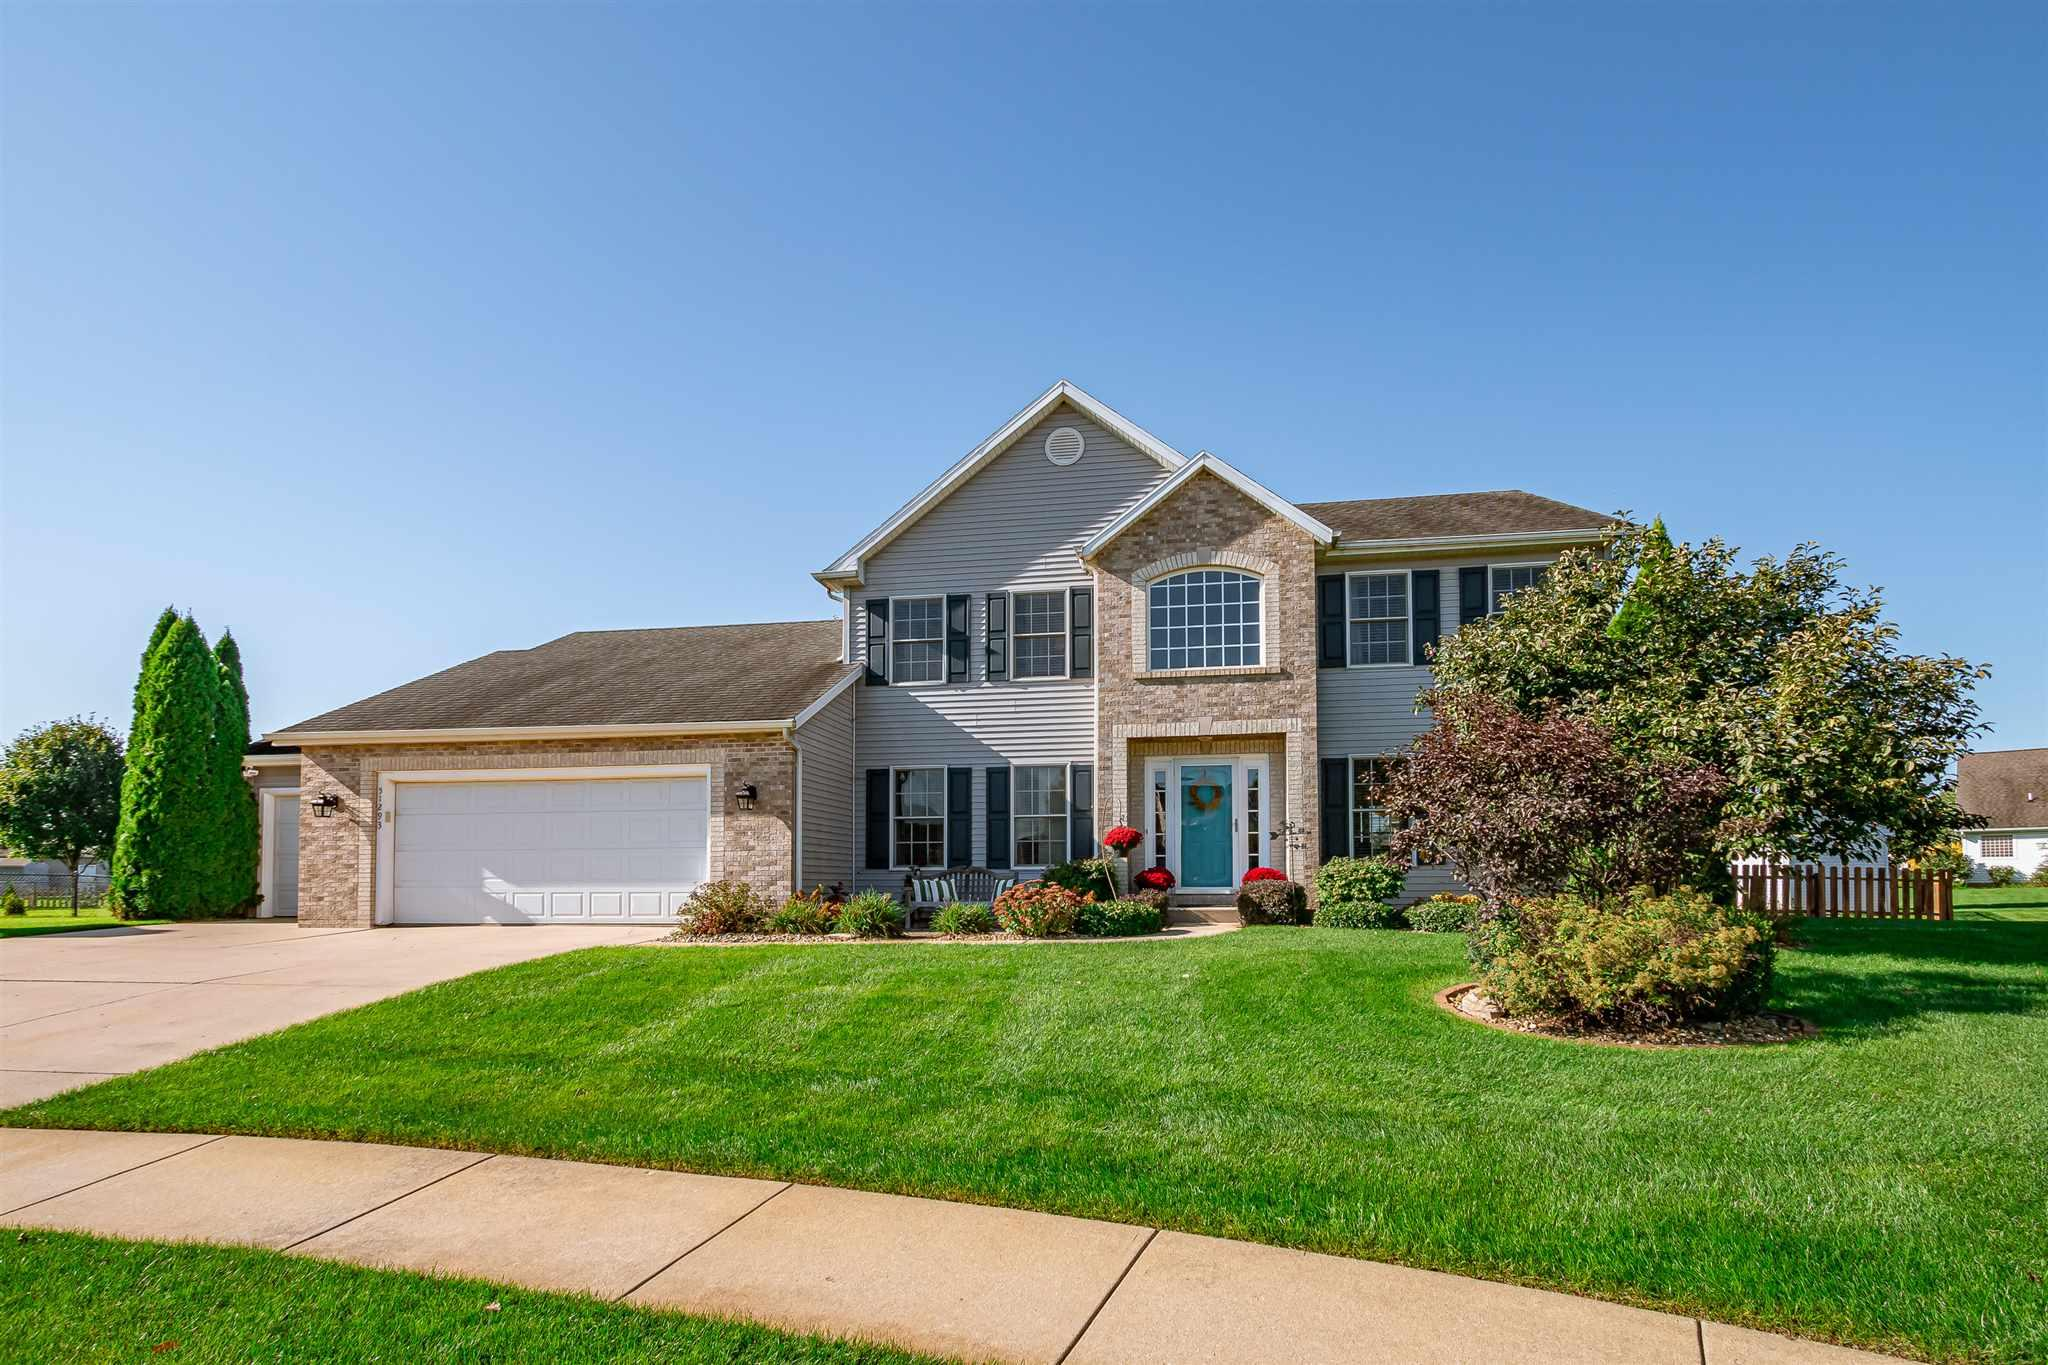 51293 Bridlewood Granger, IN 46530